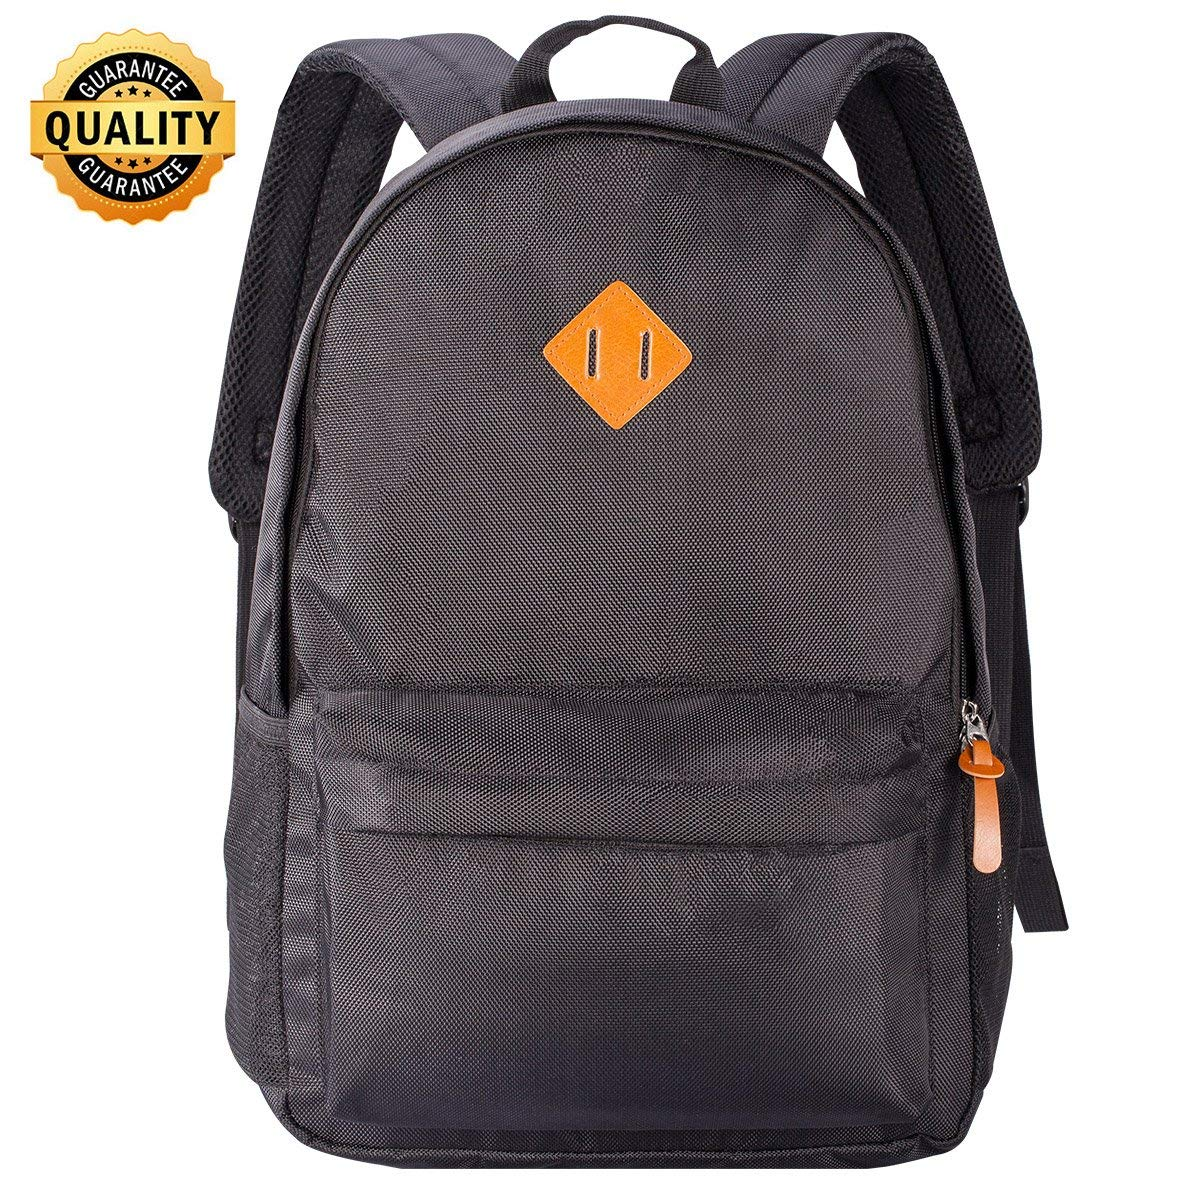 59d6ab1b01 Get Quotations · Wot i Bookbags School Backpack Backpack for School Bookbags  for Men Fits 14